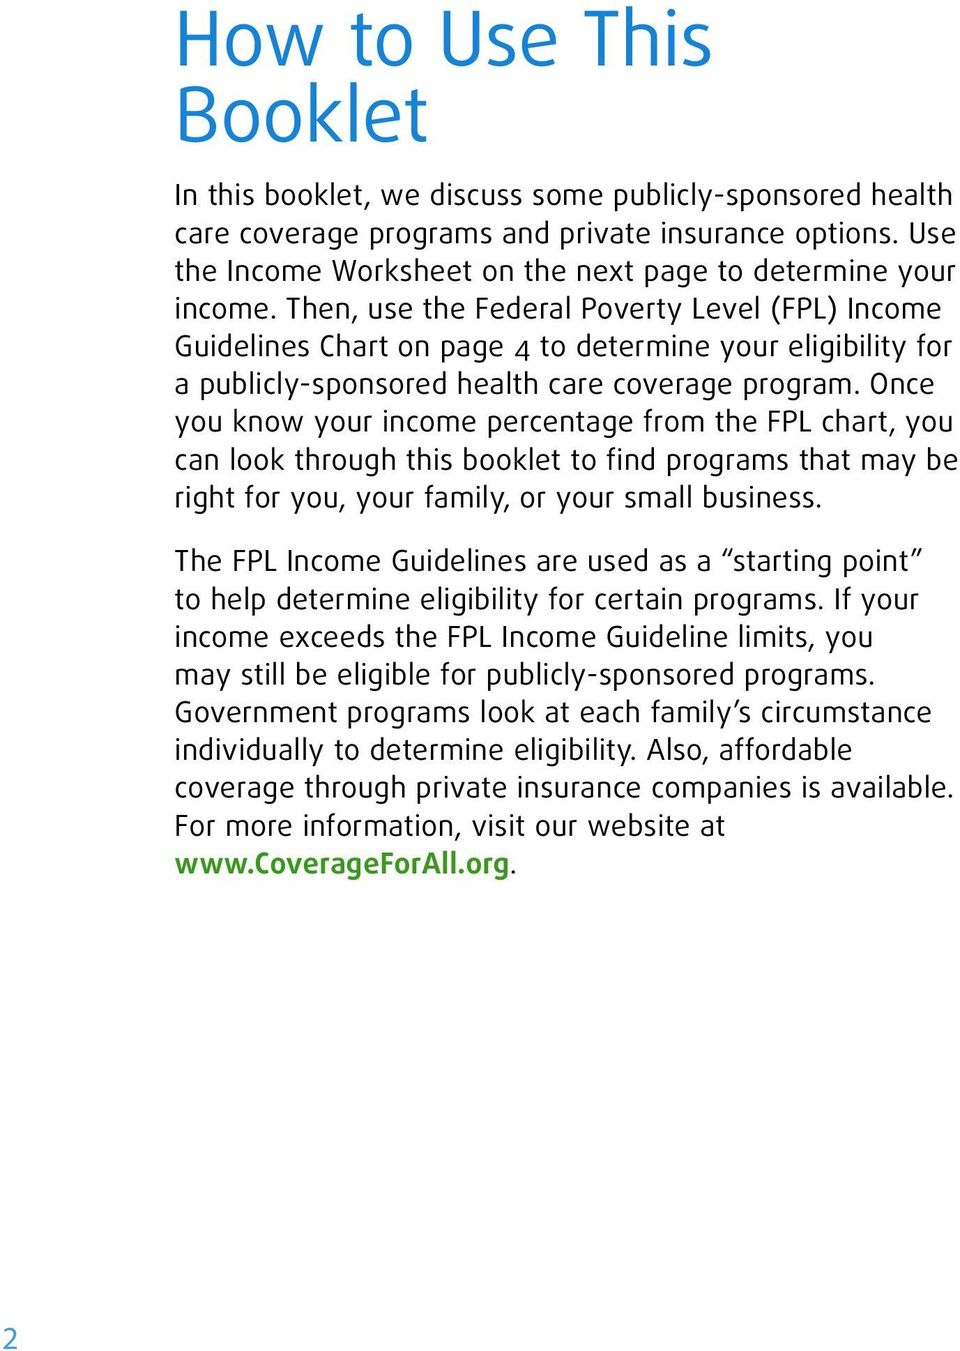 Then, use the Federal Poverty Level (FPL) Income Guidelines Chart on page 4 to determine your eligibility for a publicly-sponsored health care coverage program.